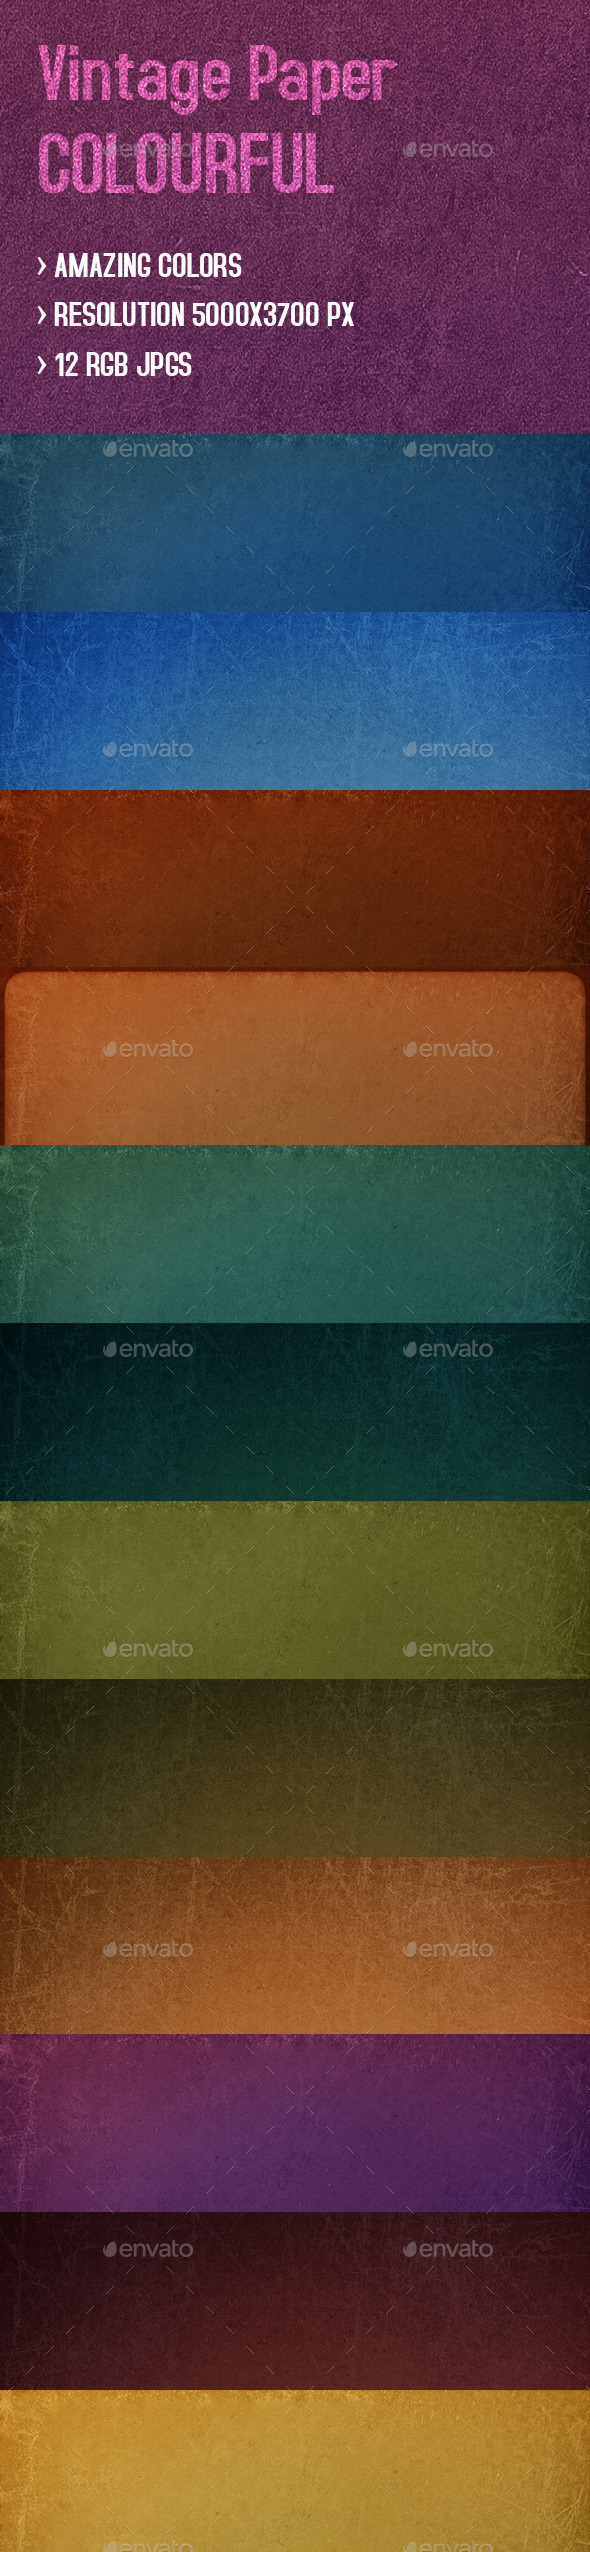 GraphicRiver Paper Textures Vintage Colors 9518347